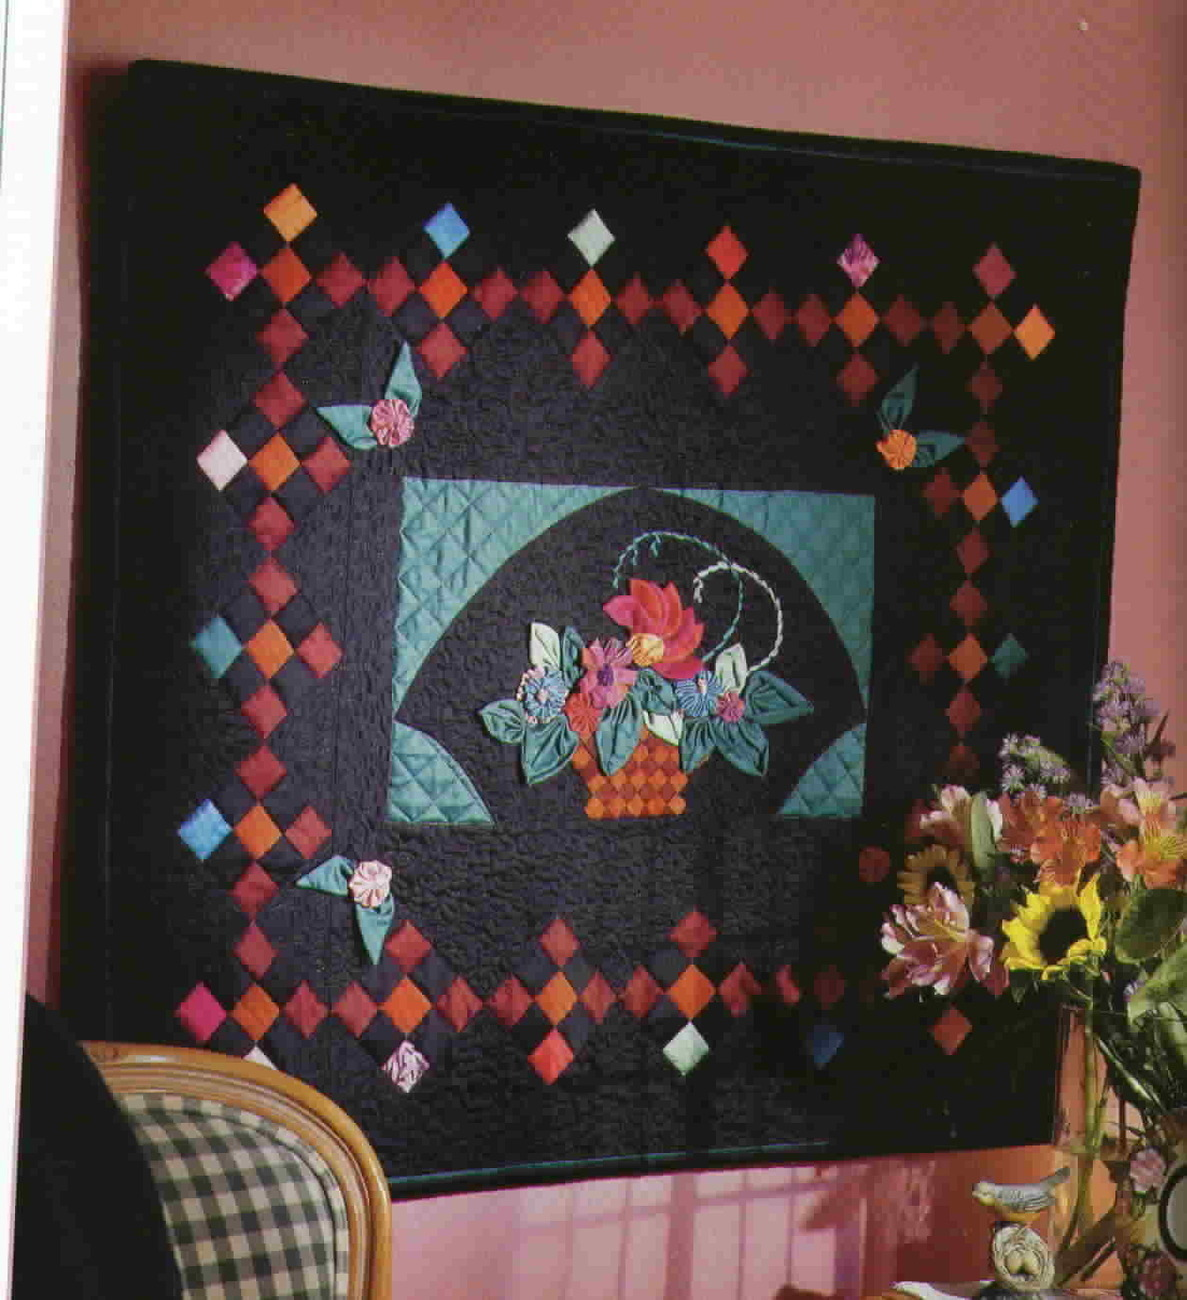 American Patchwork and Quilting Better Homes and Gardens Issue 52 October 2001